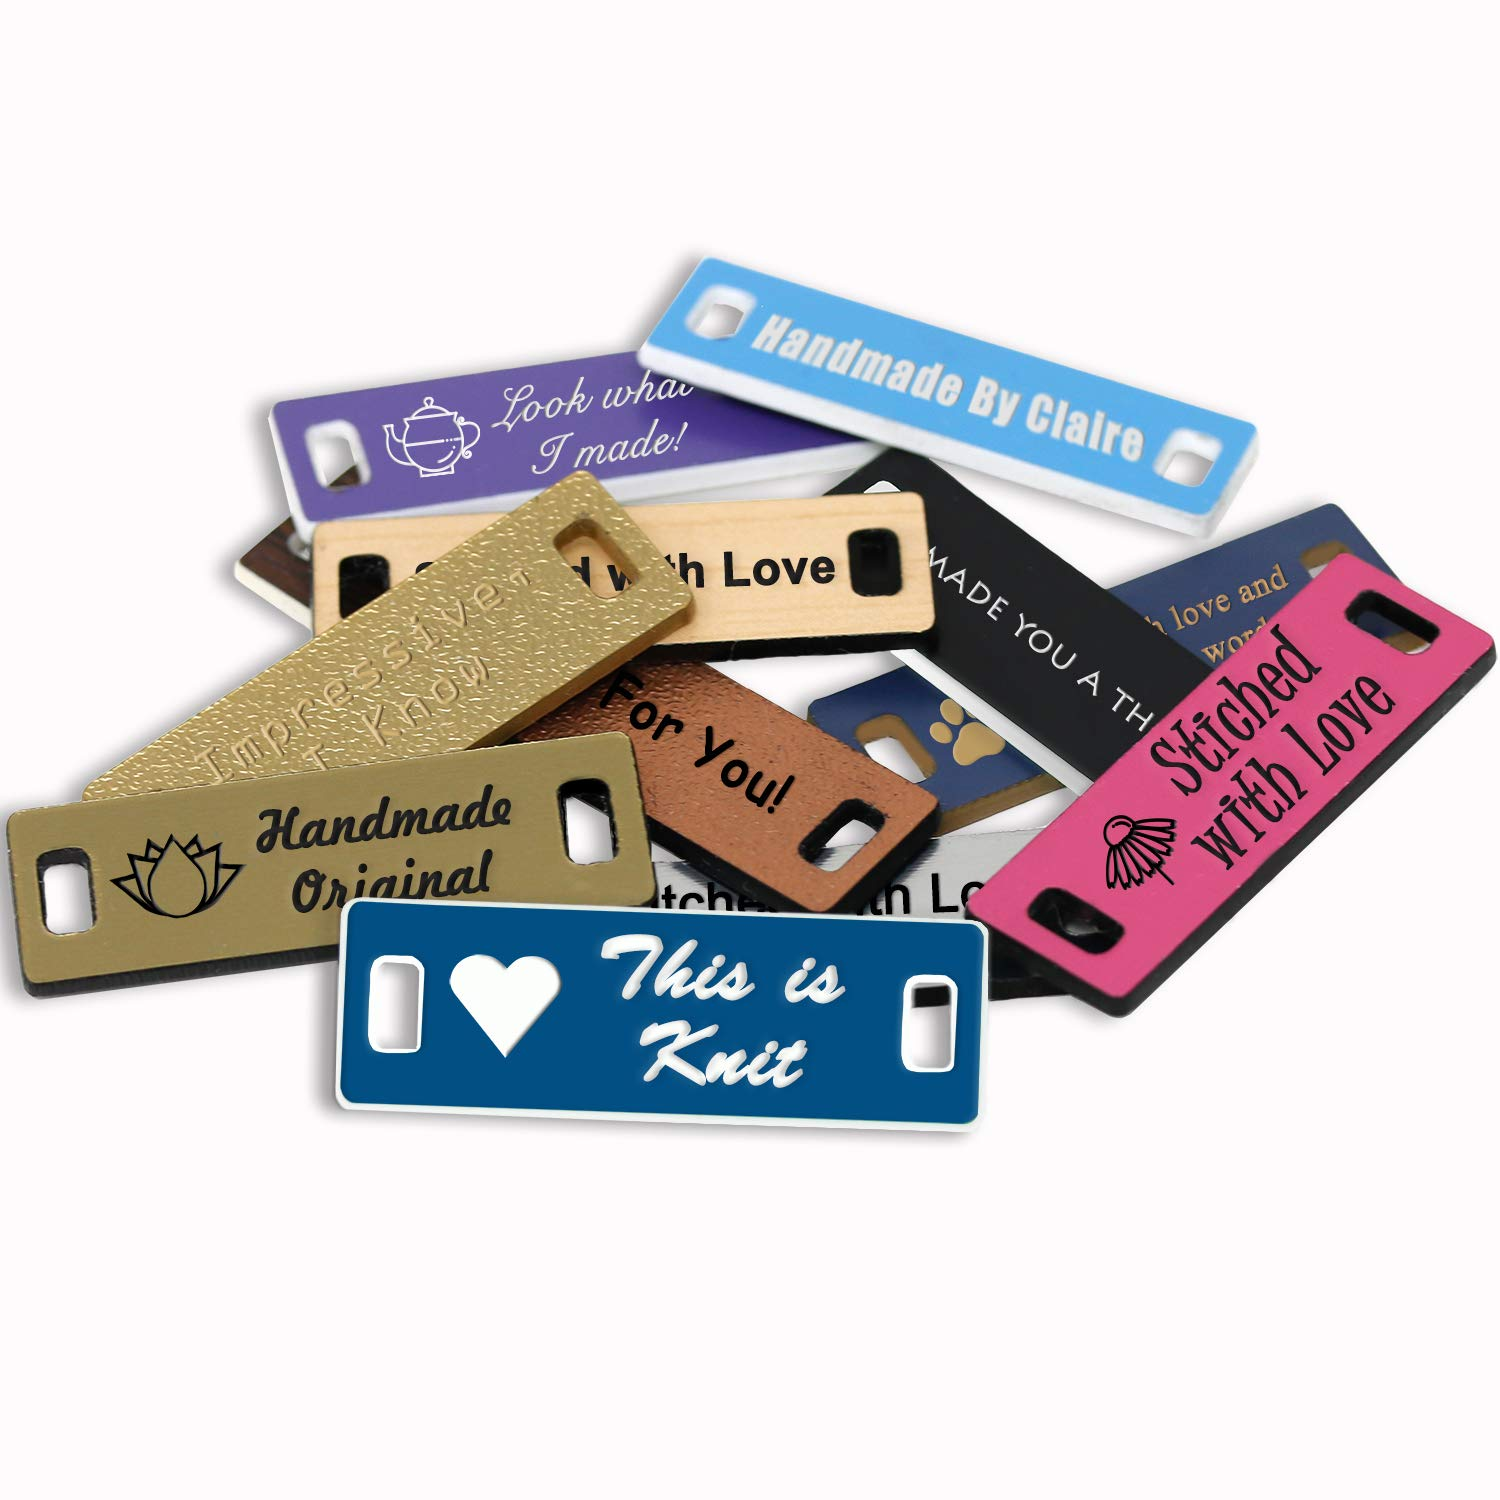 LHS Engraving | Personalized Handmade Tags Custom Engraved Blue Plastic Sewing & Knitting Supplies White Lettering USA - B9